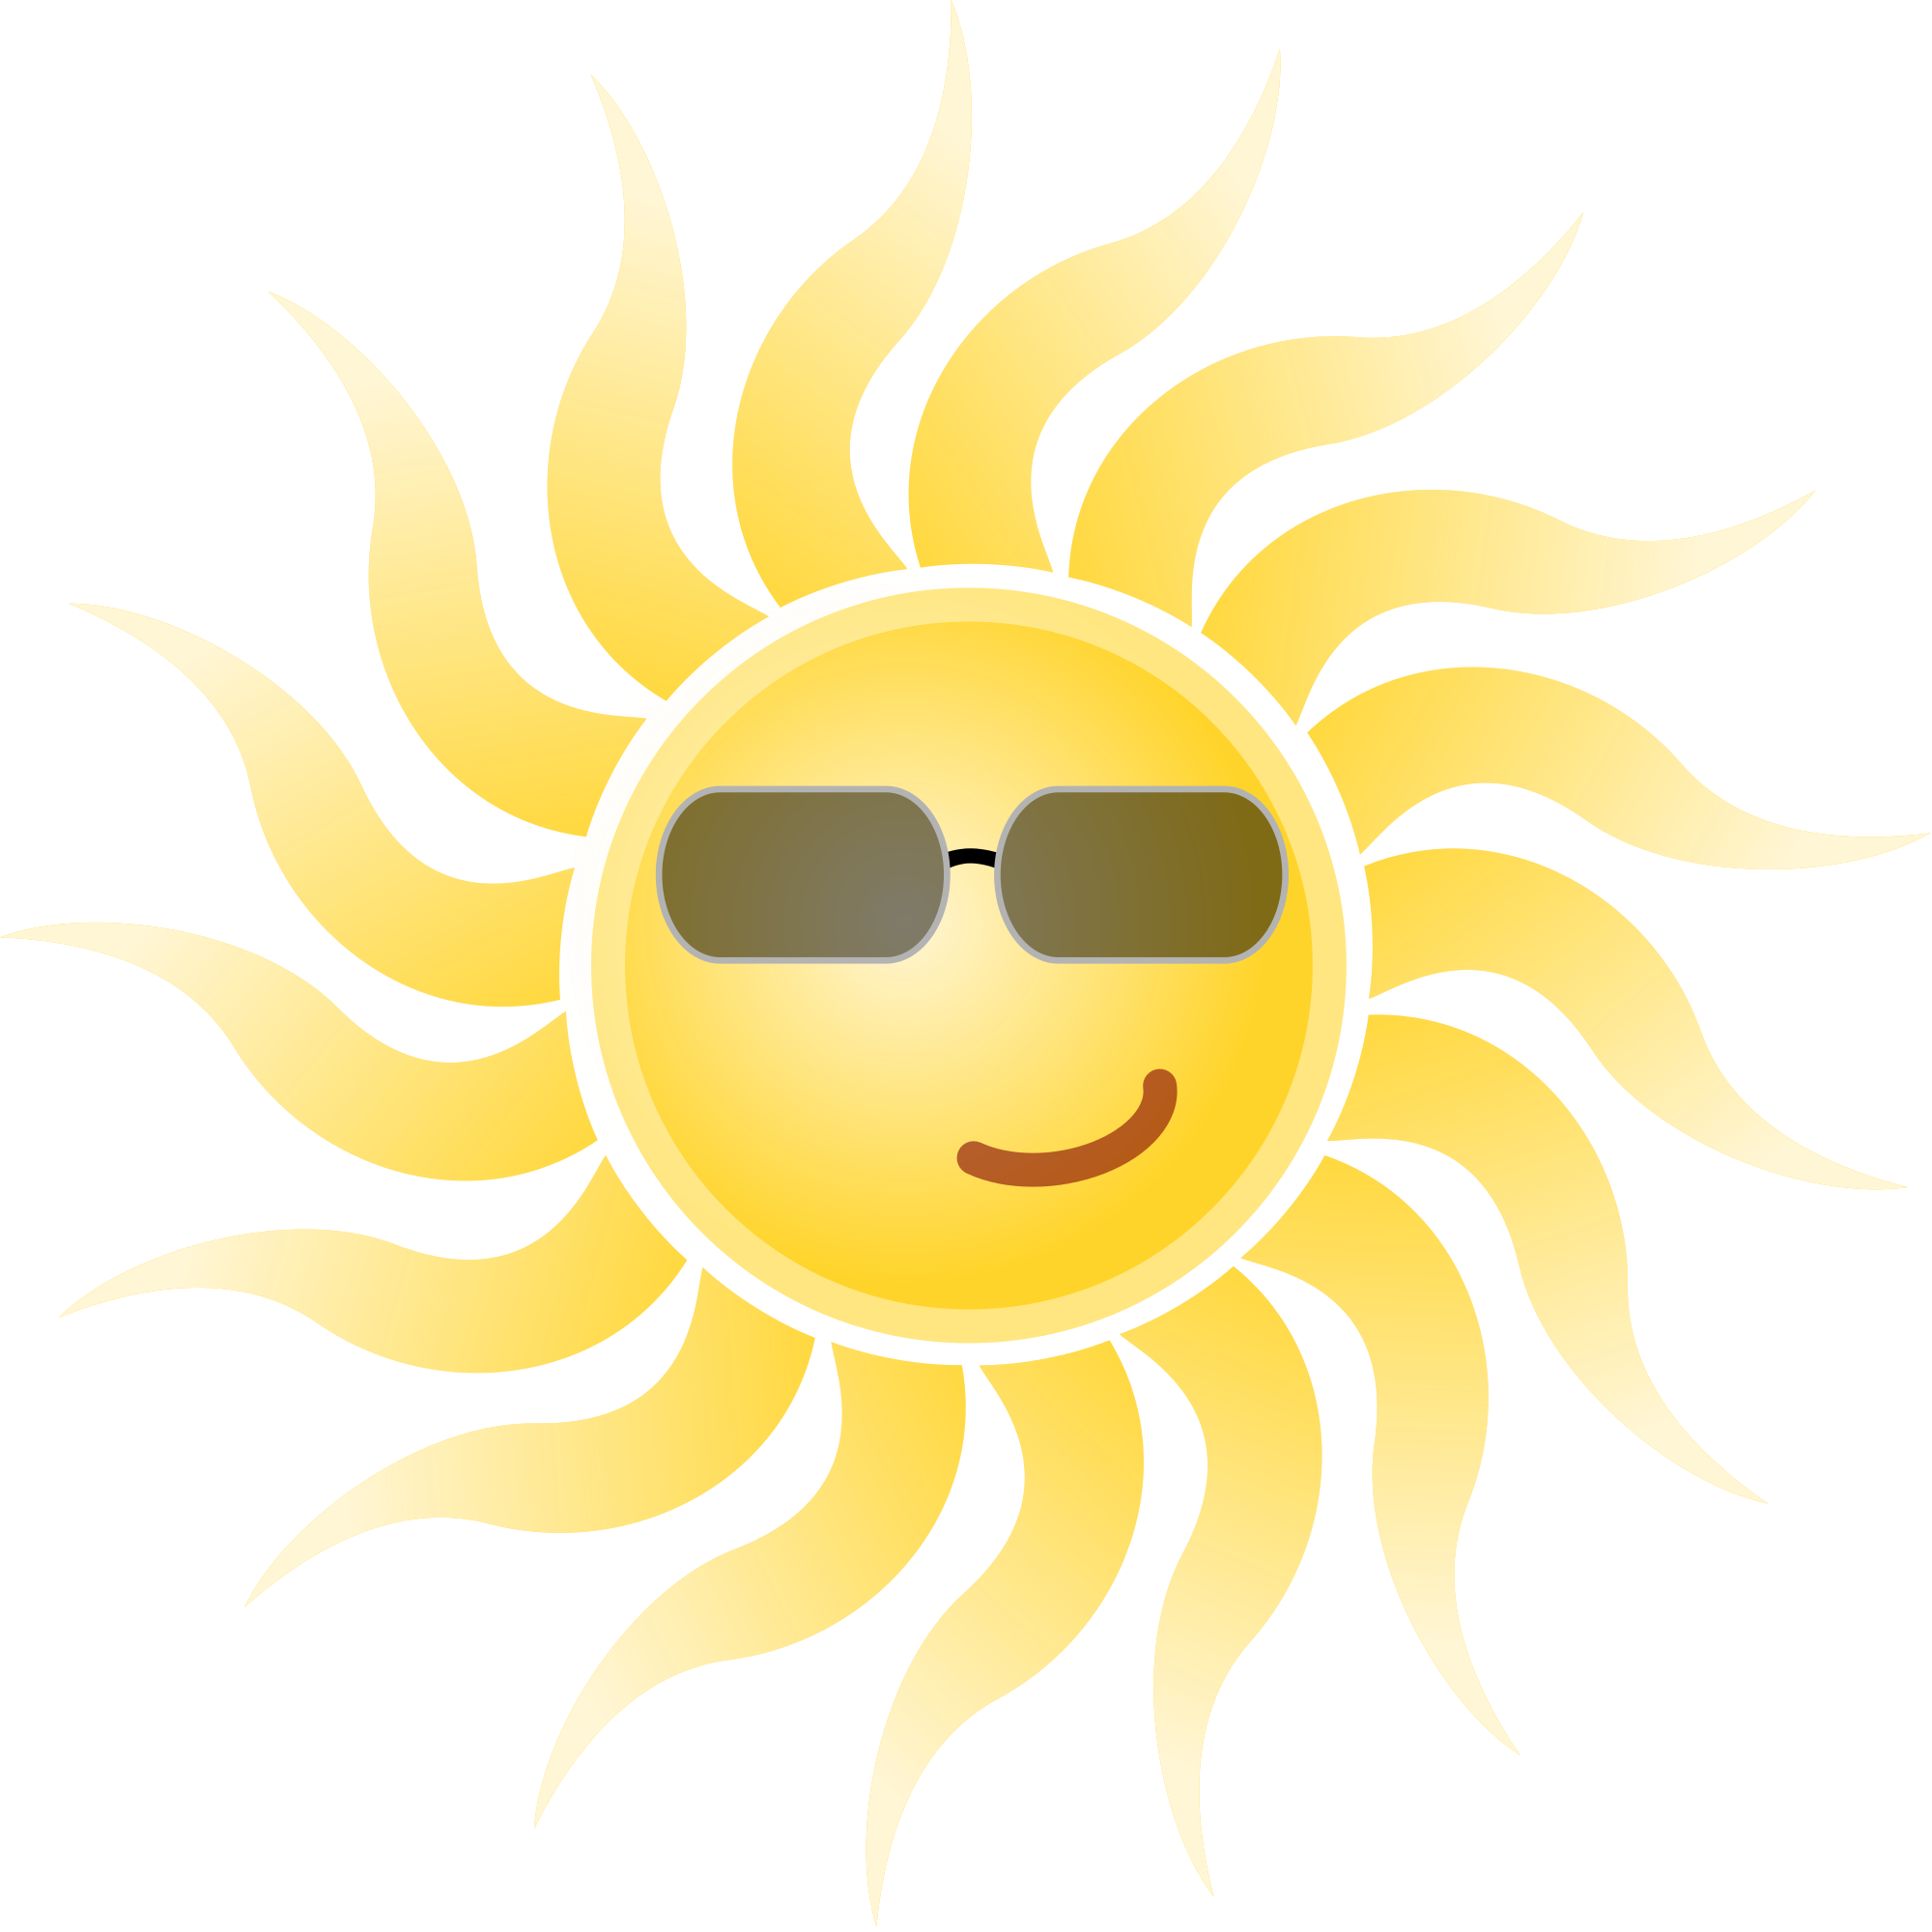 File:Sun wearing sunglasses.svg - Wikimedia Commons vector stock